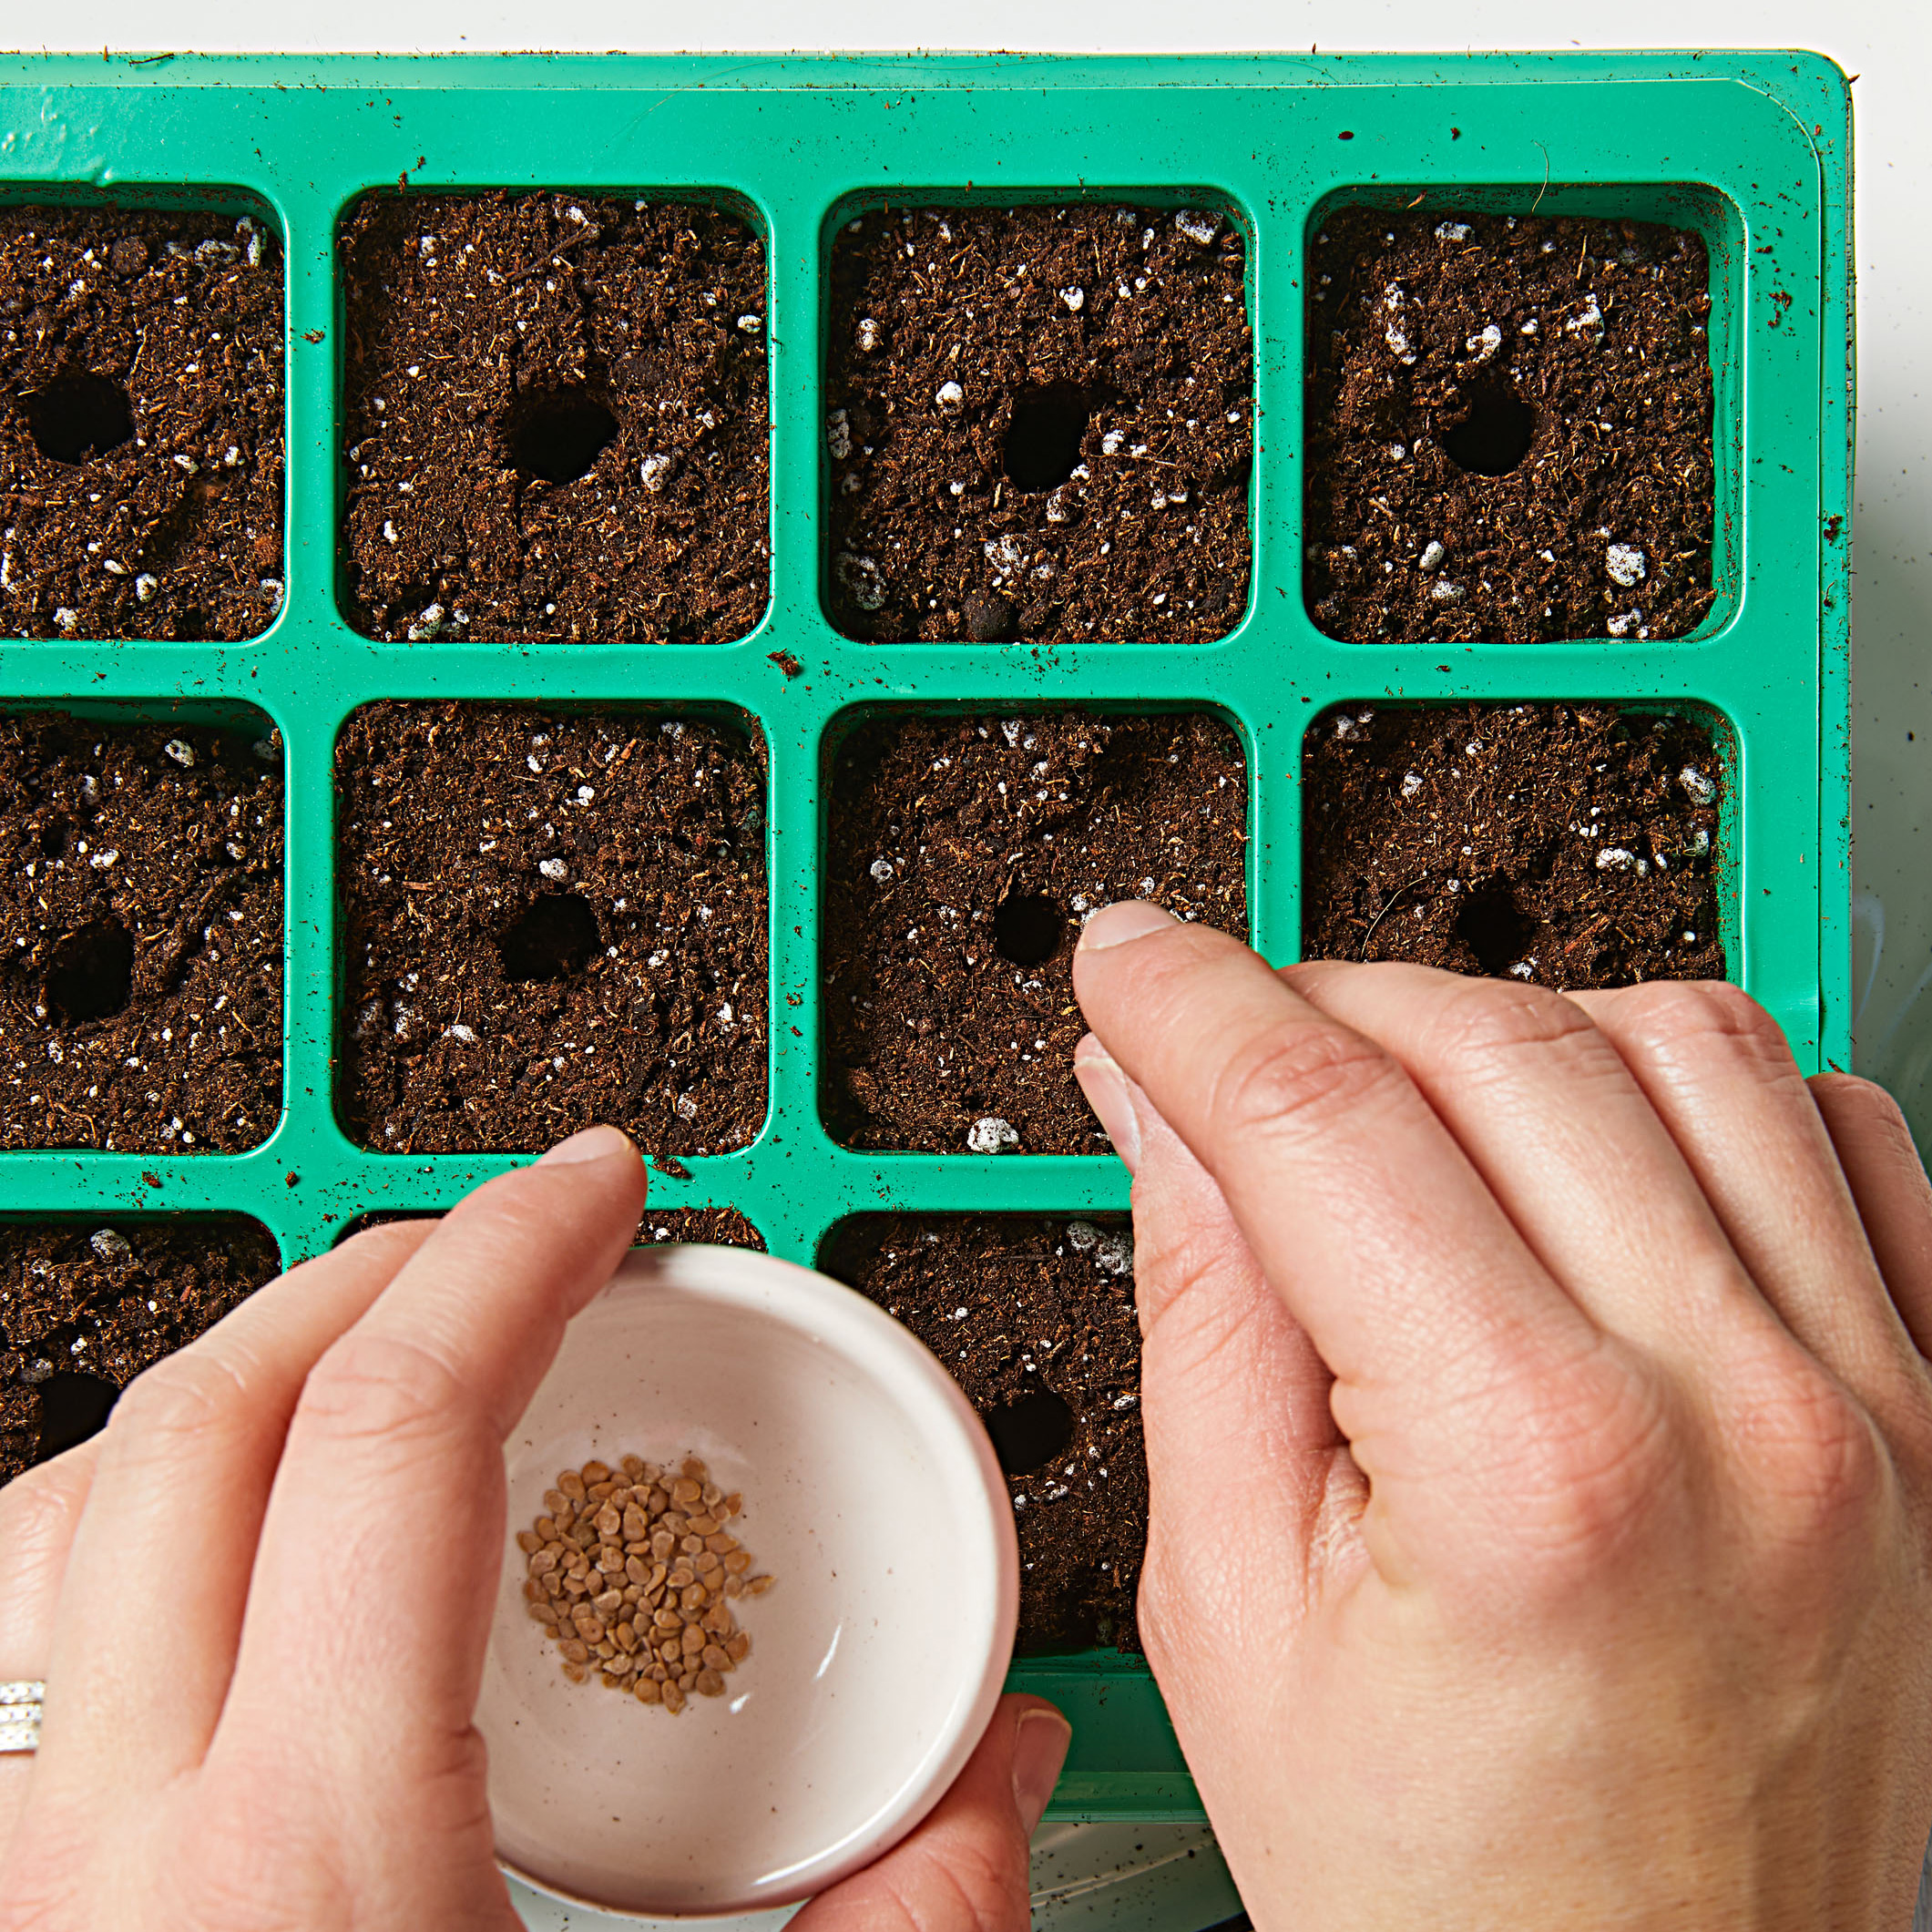 How to start seeds—Step 3